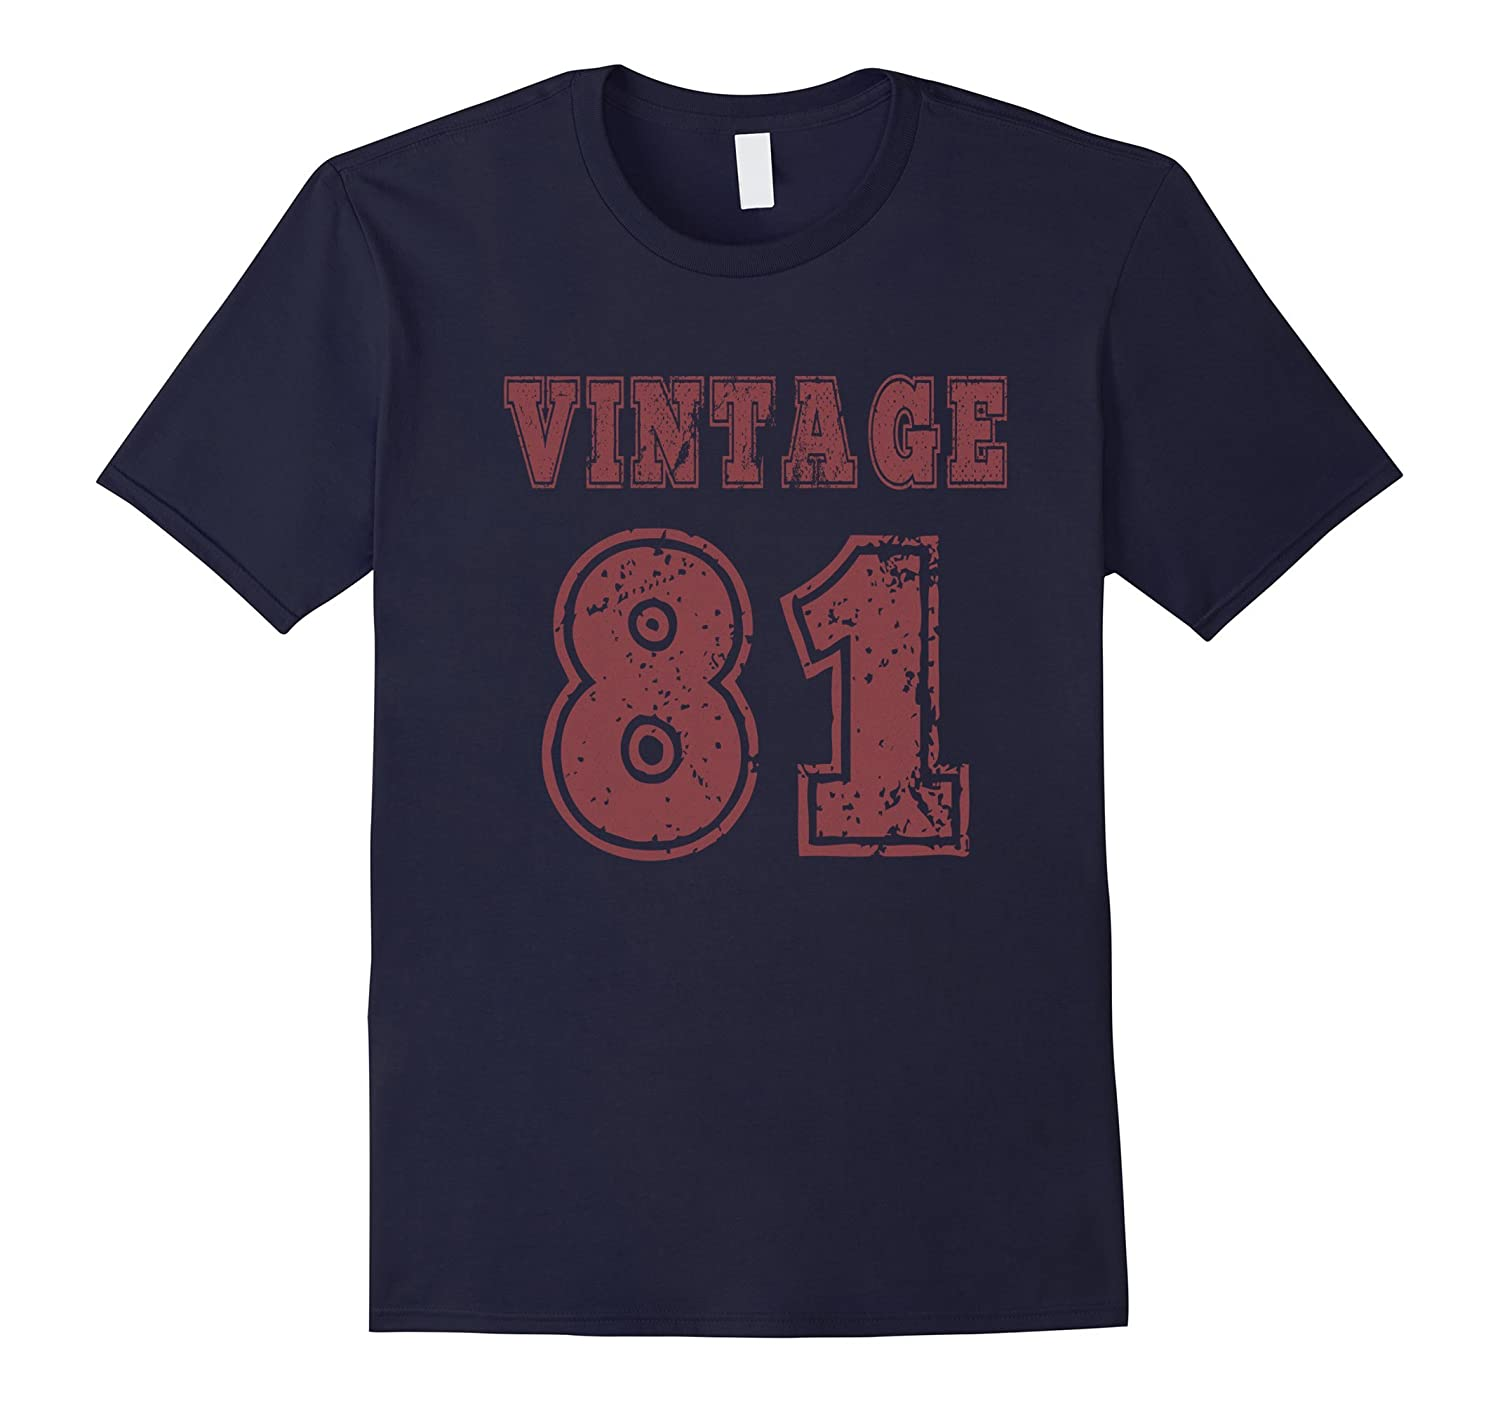 1981 Vintage Birthday Gift T-shirt For Men Women-TH